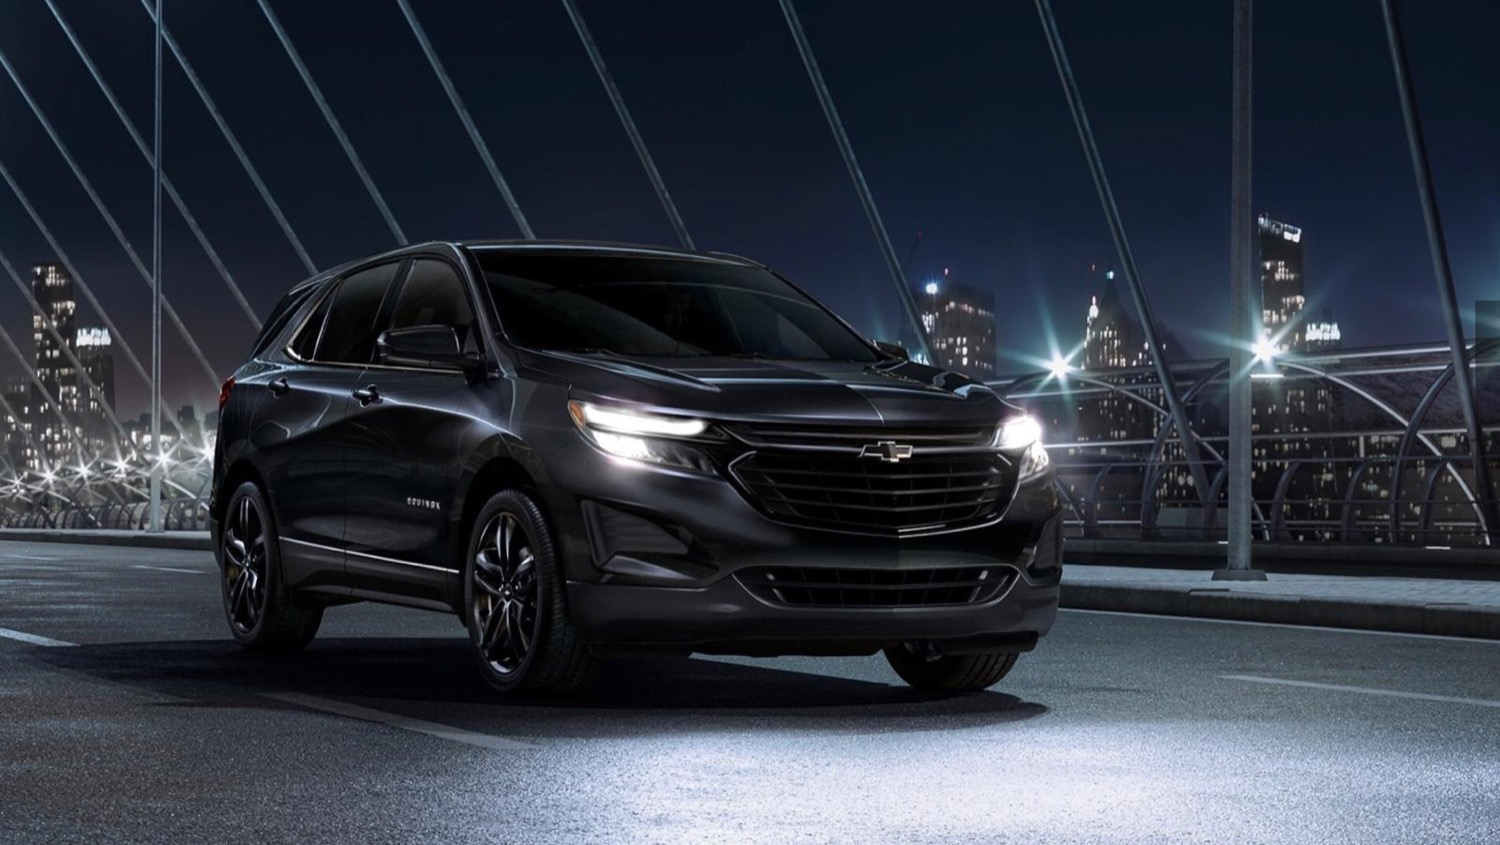 2021 Chevrolet Equinox Rendered | Gm Authority 2021 Chevy Equinox Premier Lease Deals, Test Drive, Fwd